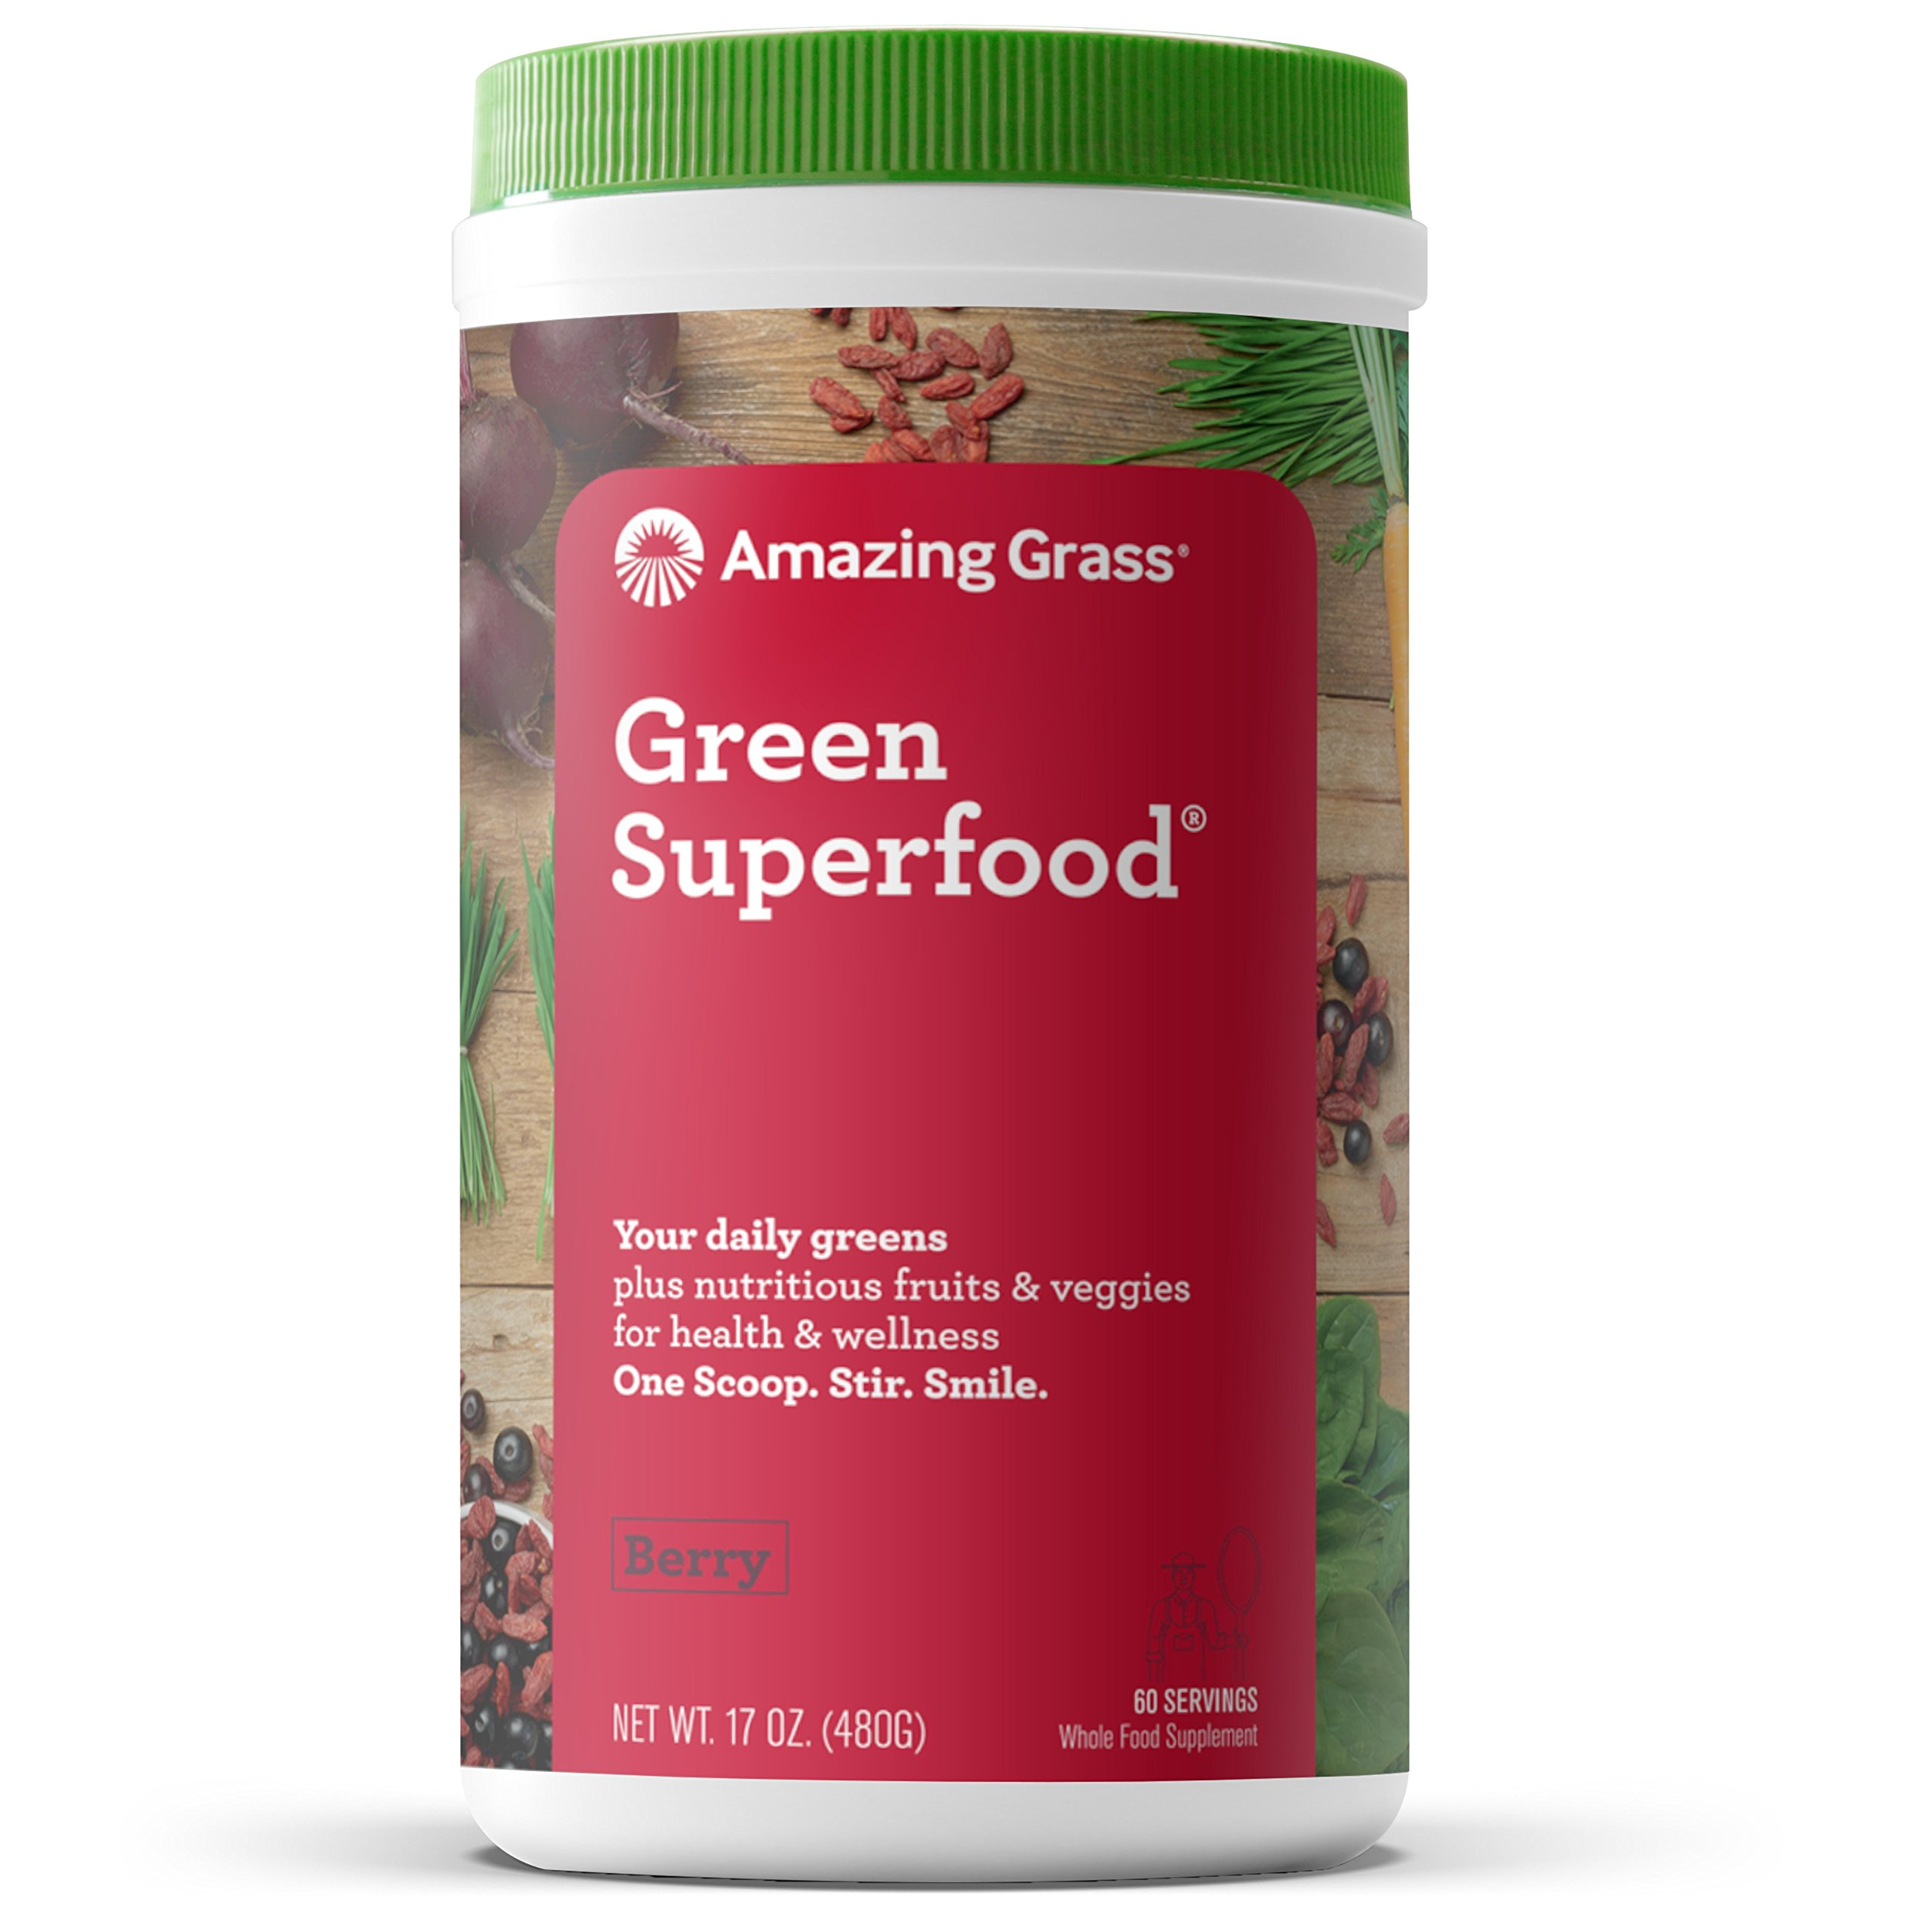 Amazing Grass Green Superfood Organic Powder with Wheat Grass and Greens, Flavor: Berry, 60 Servings